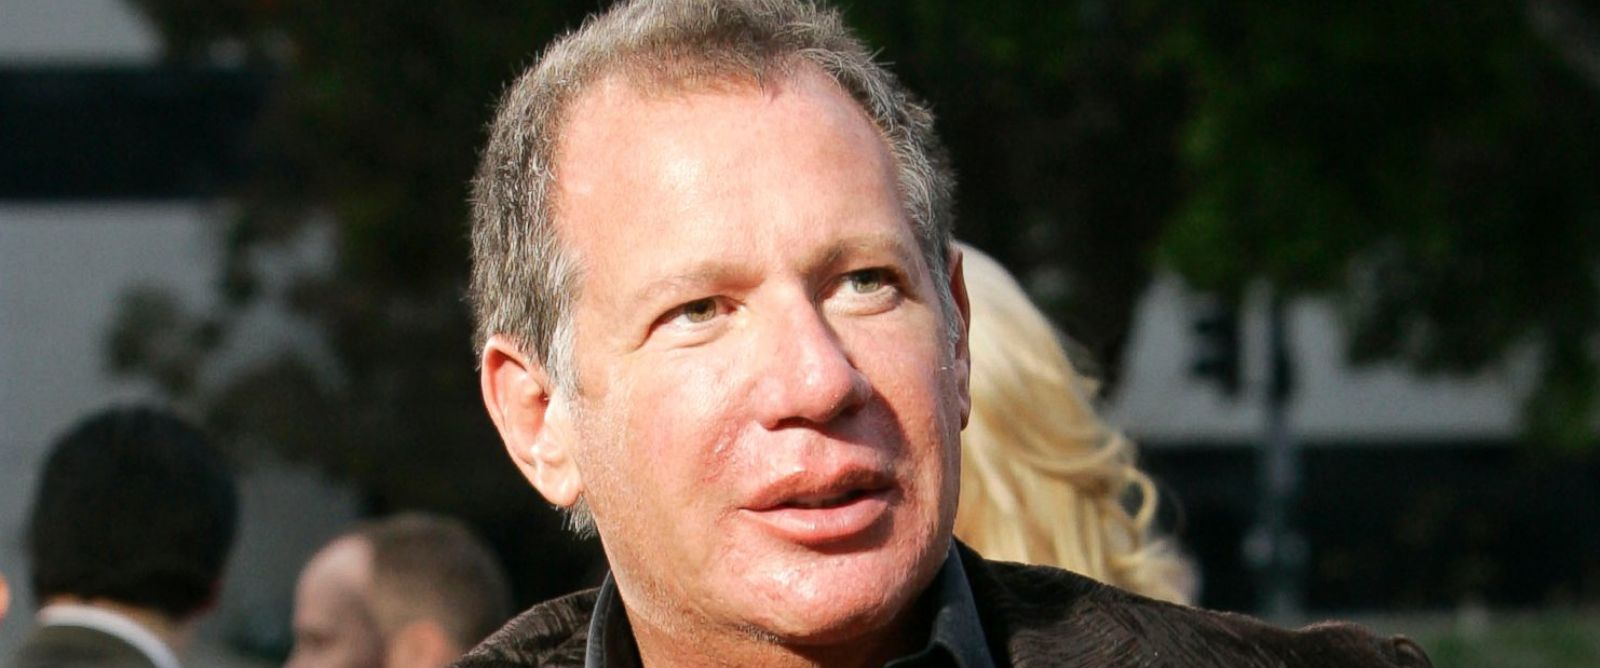 "PHOTO: In this 2007 file photo, Gary Shandling arrives to the premiere of the new comedy film ""Knocked Up"" in Los Angeles. Shandling died, Thursday, March 24, 2016 of an undisclosed cause in Los Angeles. He was 66."